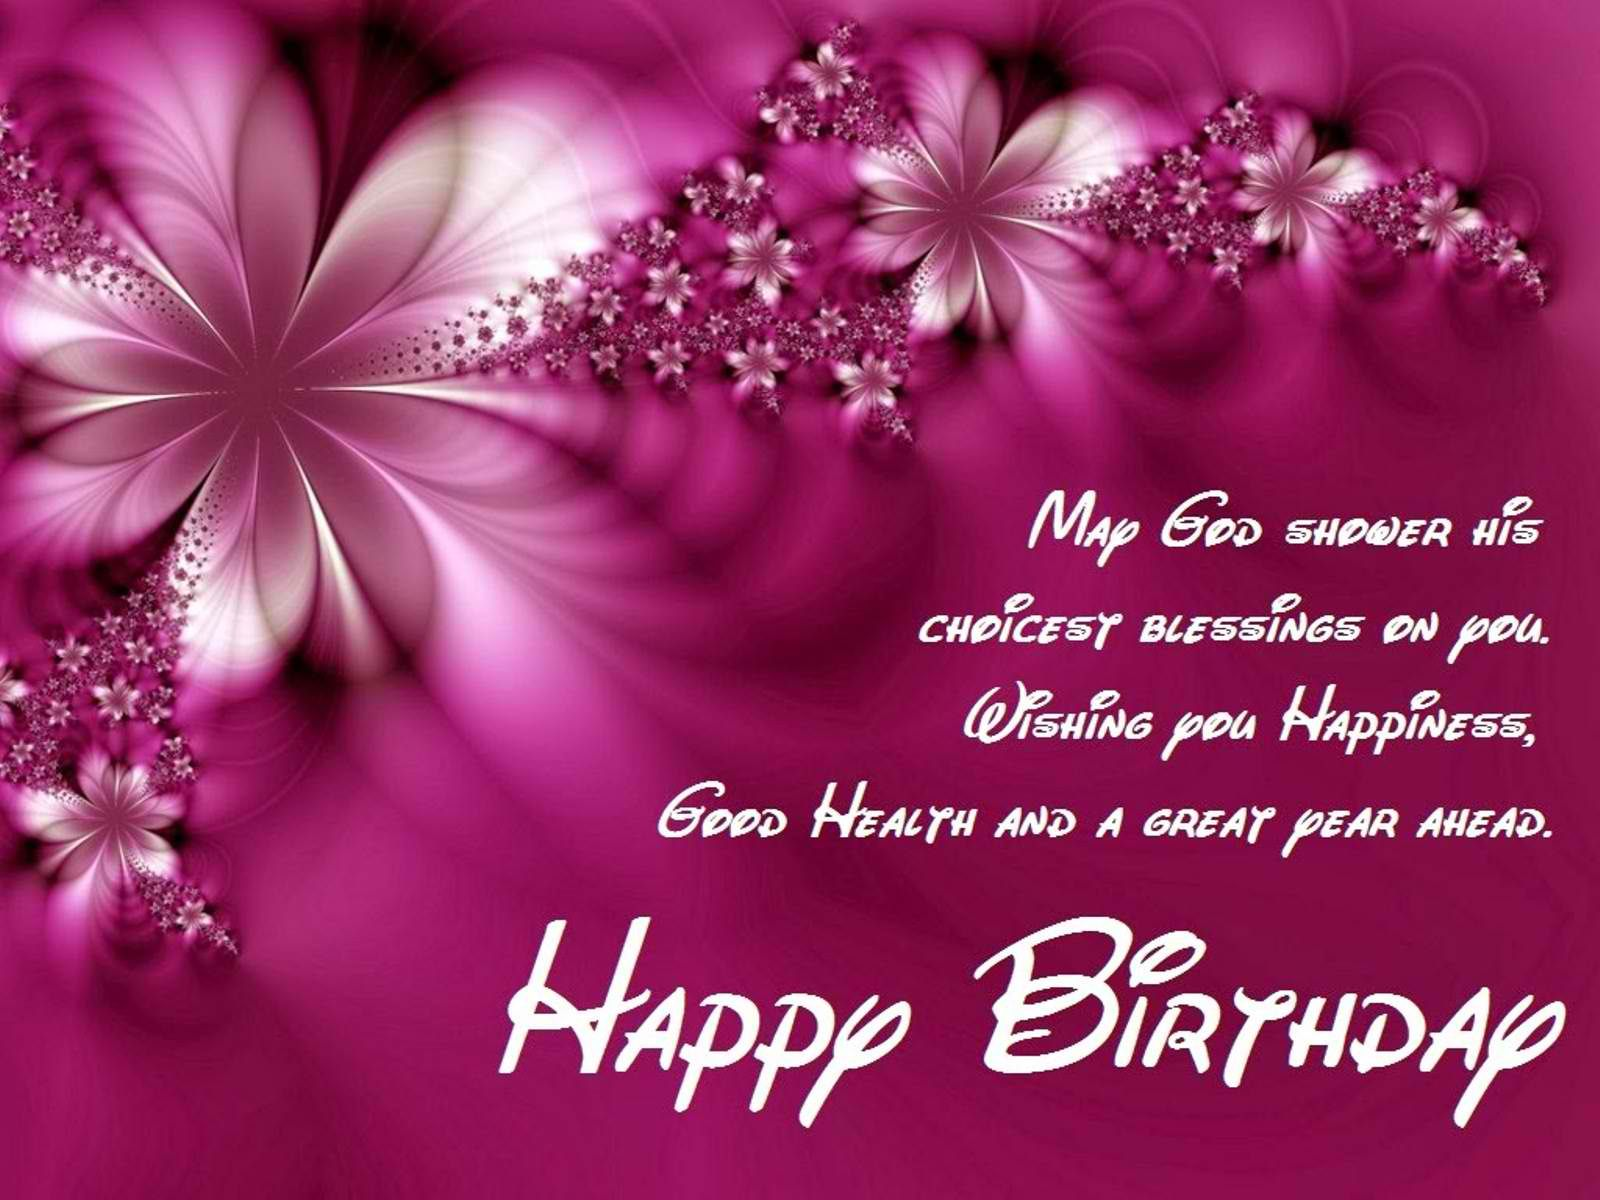 happy birthday quotes for a granddaughter Google Search – Google Greetings for Birthday